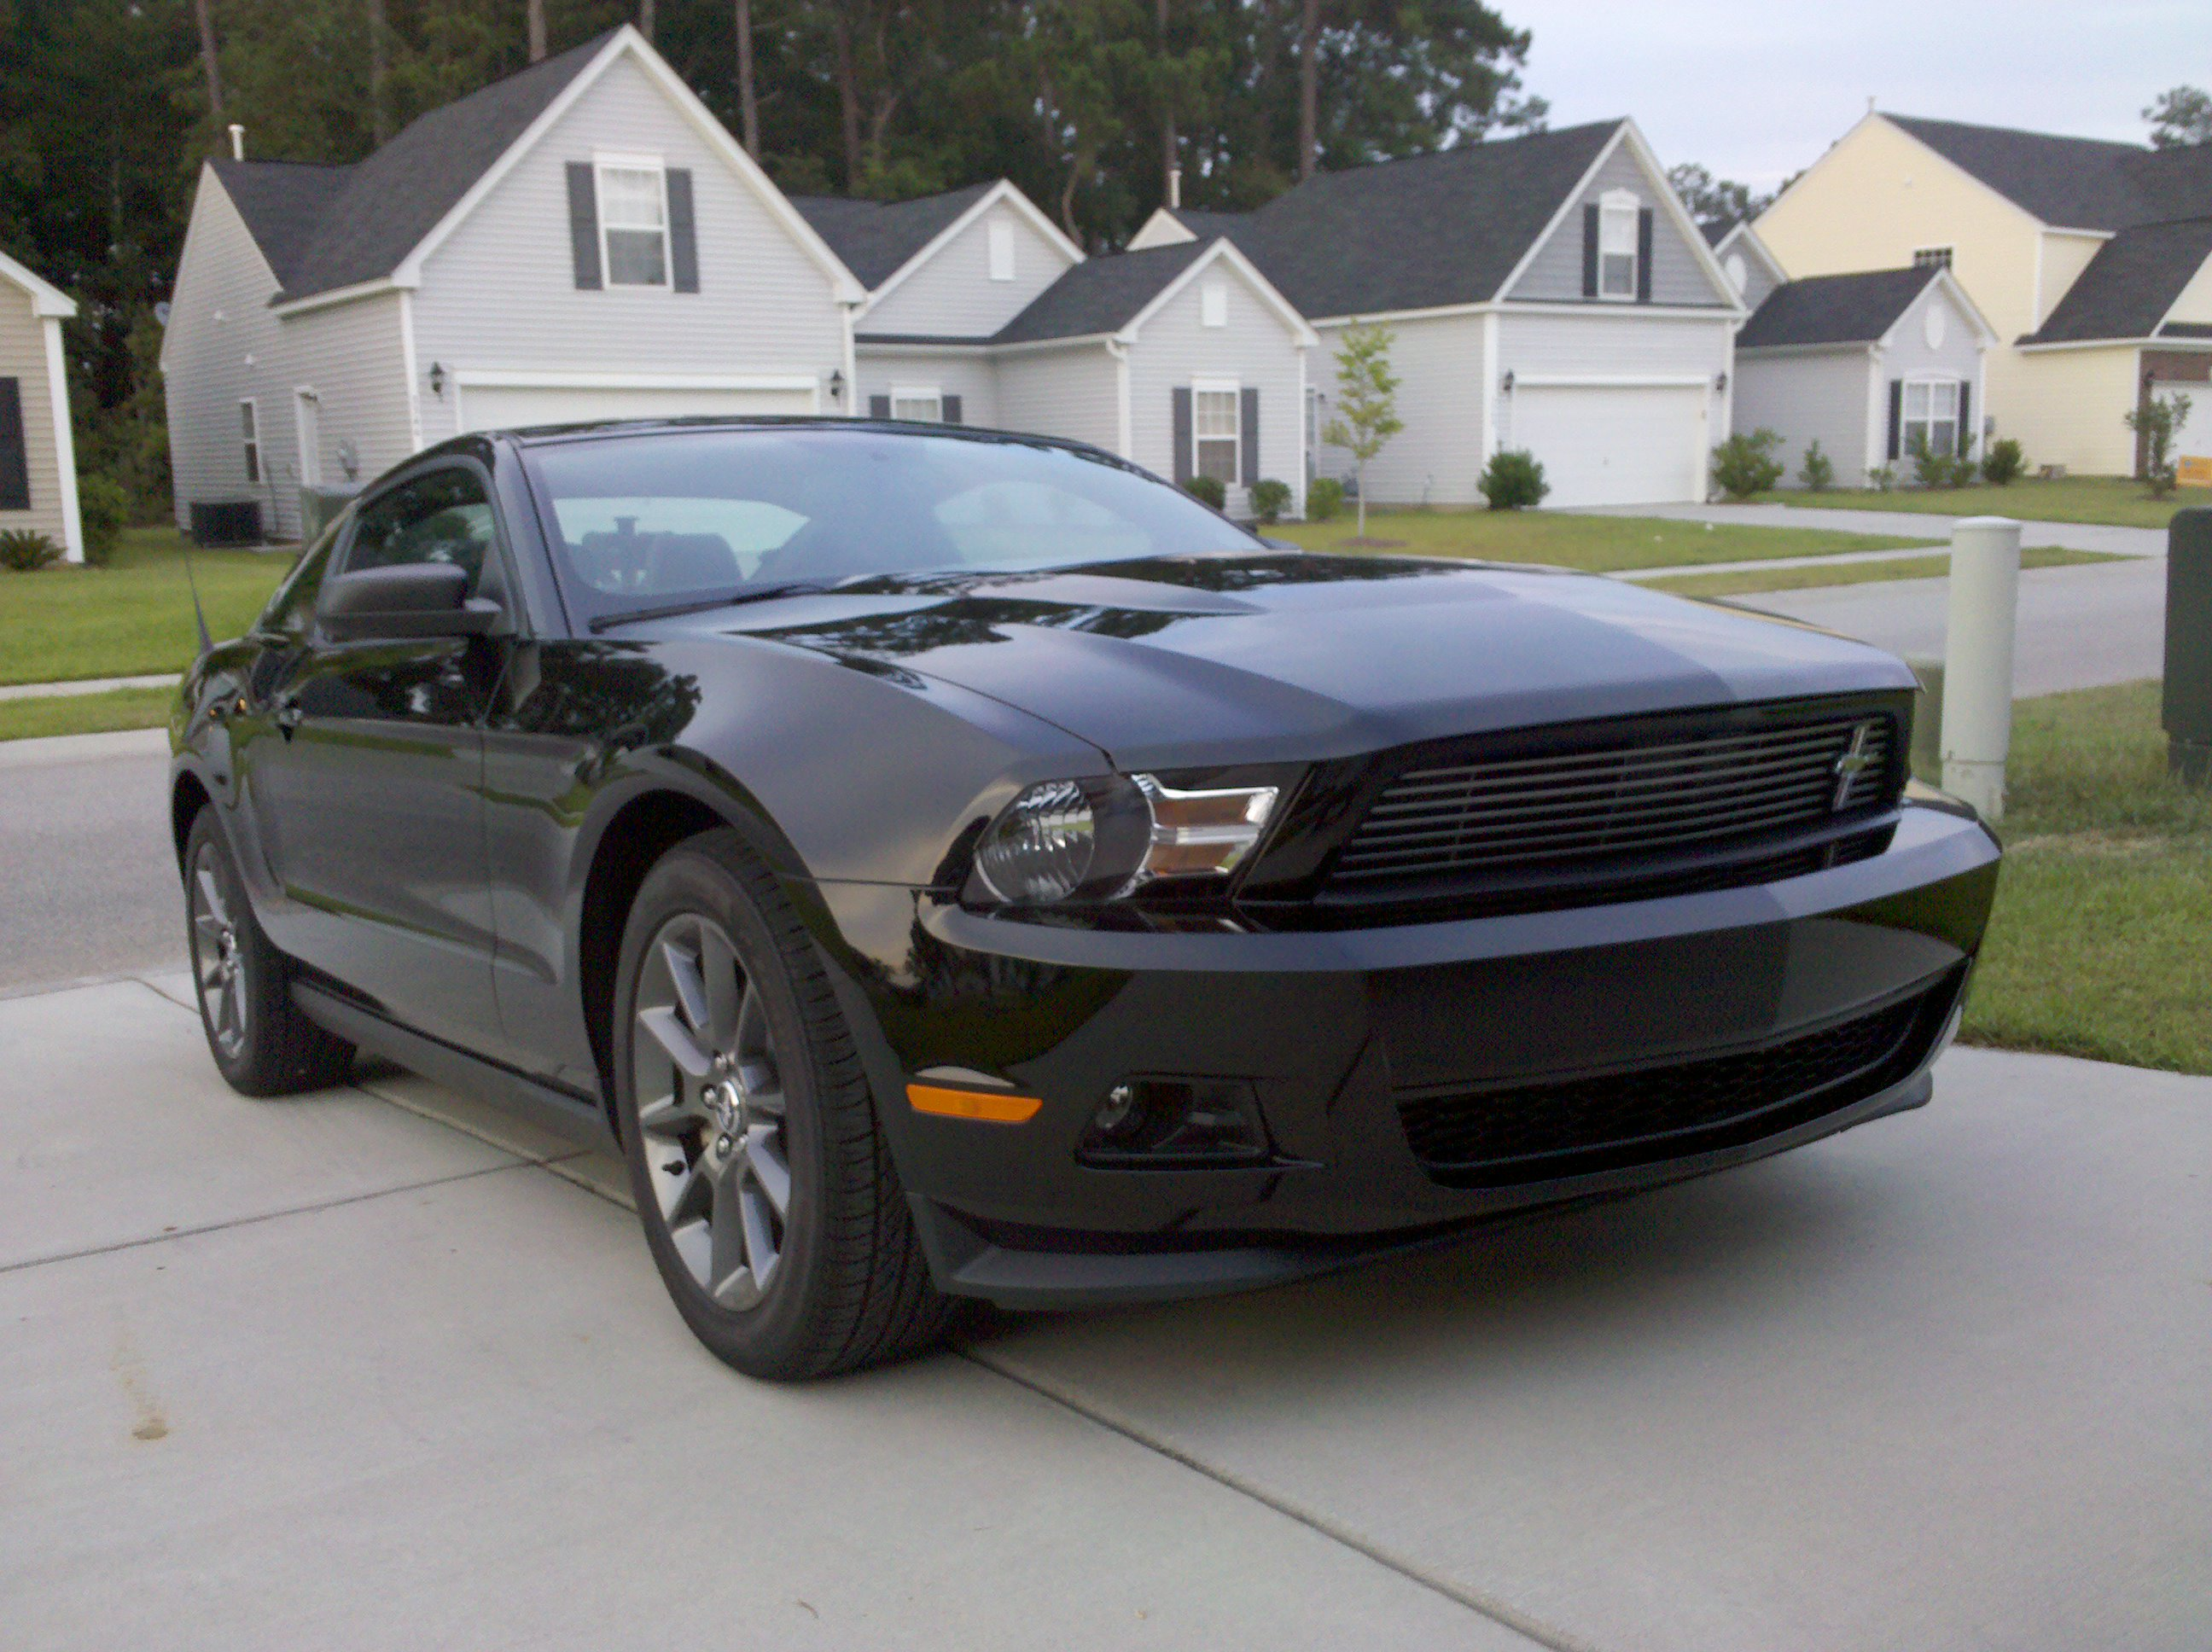 File2011 ford mustang v6 coupe jpg